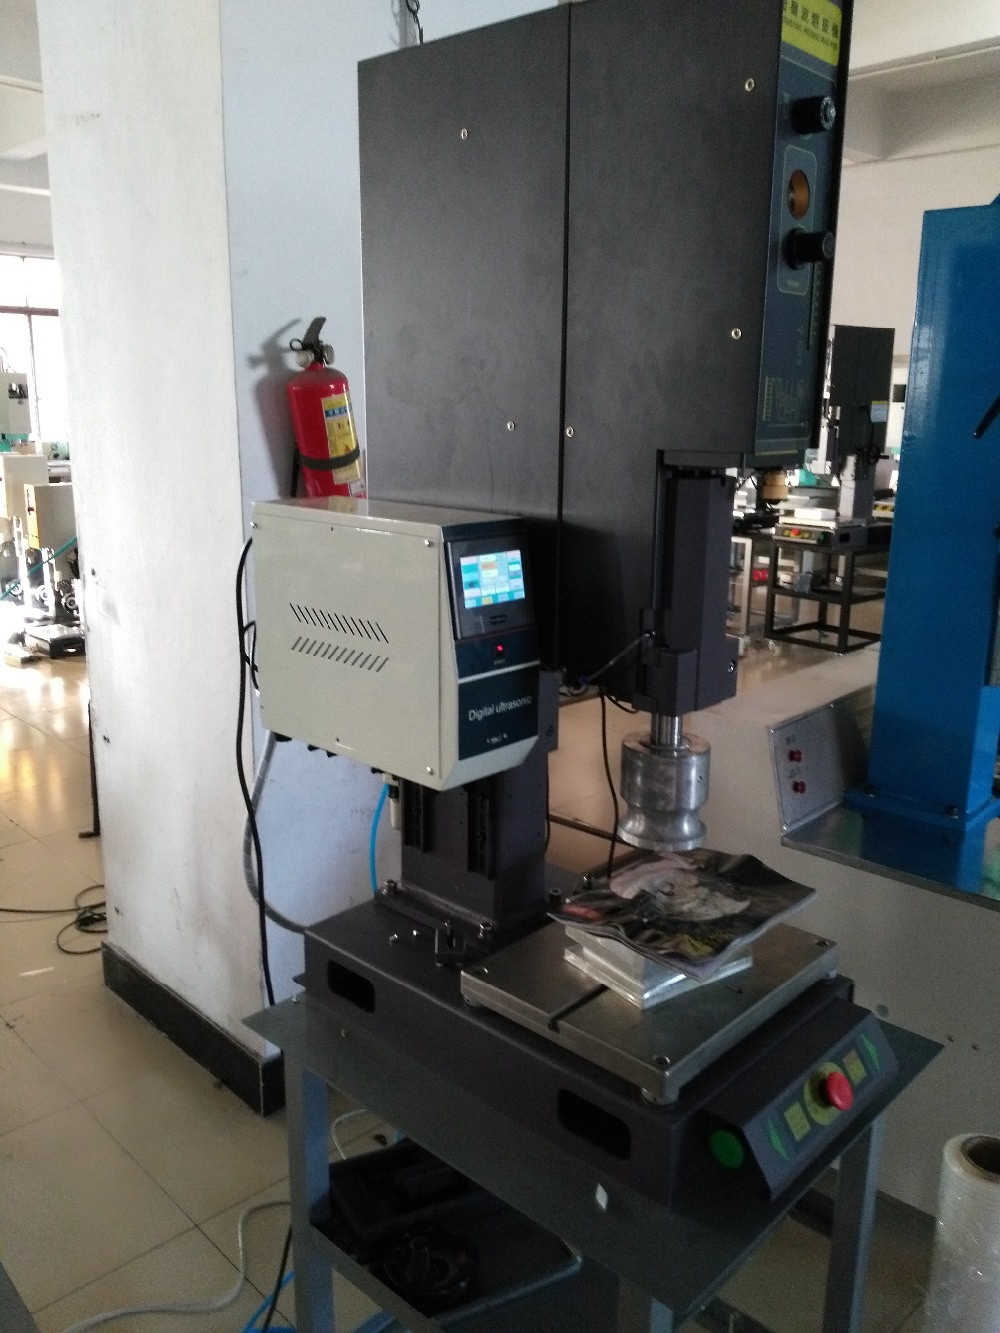 1500W/20khz ultrasonic plastic welding equipment,,1500W Intelligent Digital Ultrasonic Welding Machine,welder machine  цены